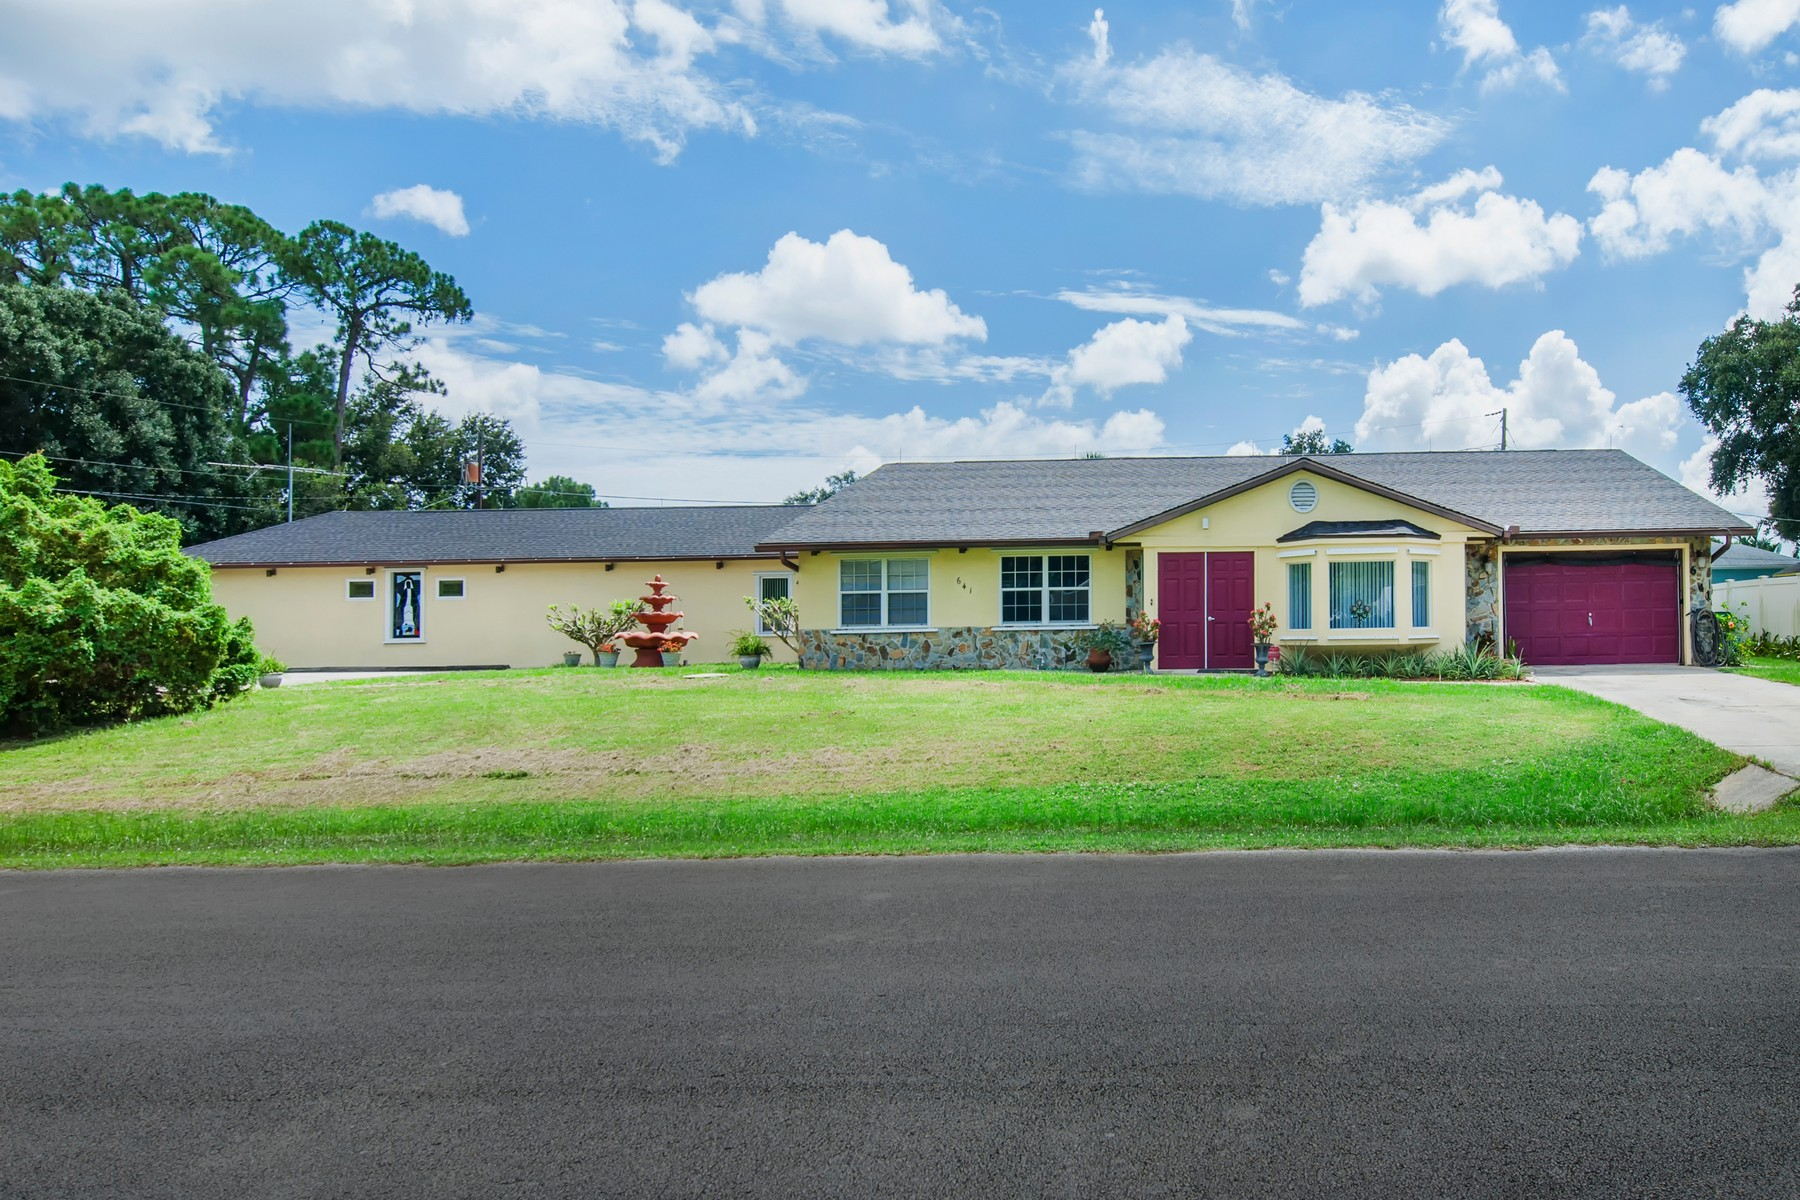 Unique Home Zoned For Many Possibilities 641 Braddock Street Sebastian, Florida 32958 Estados Unidos